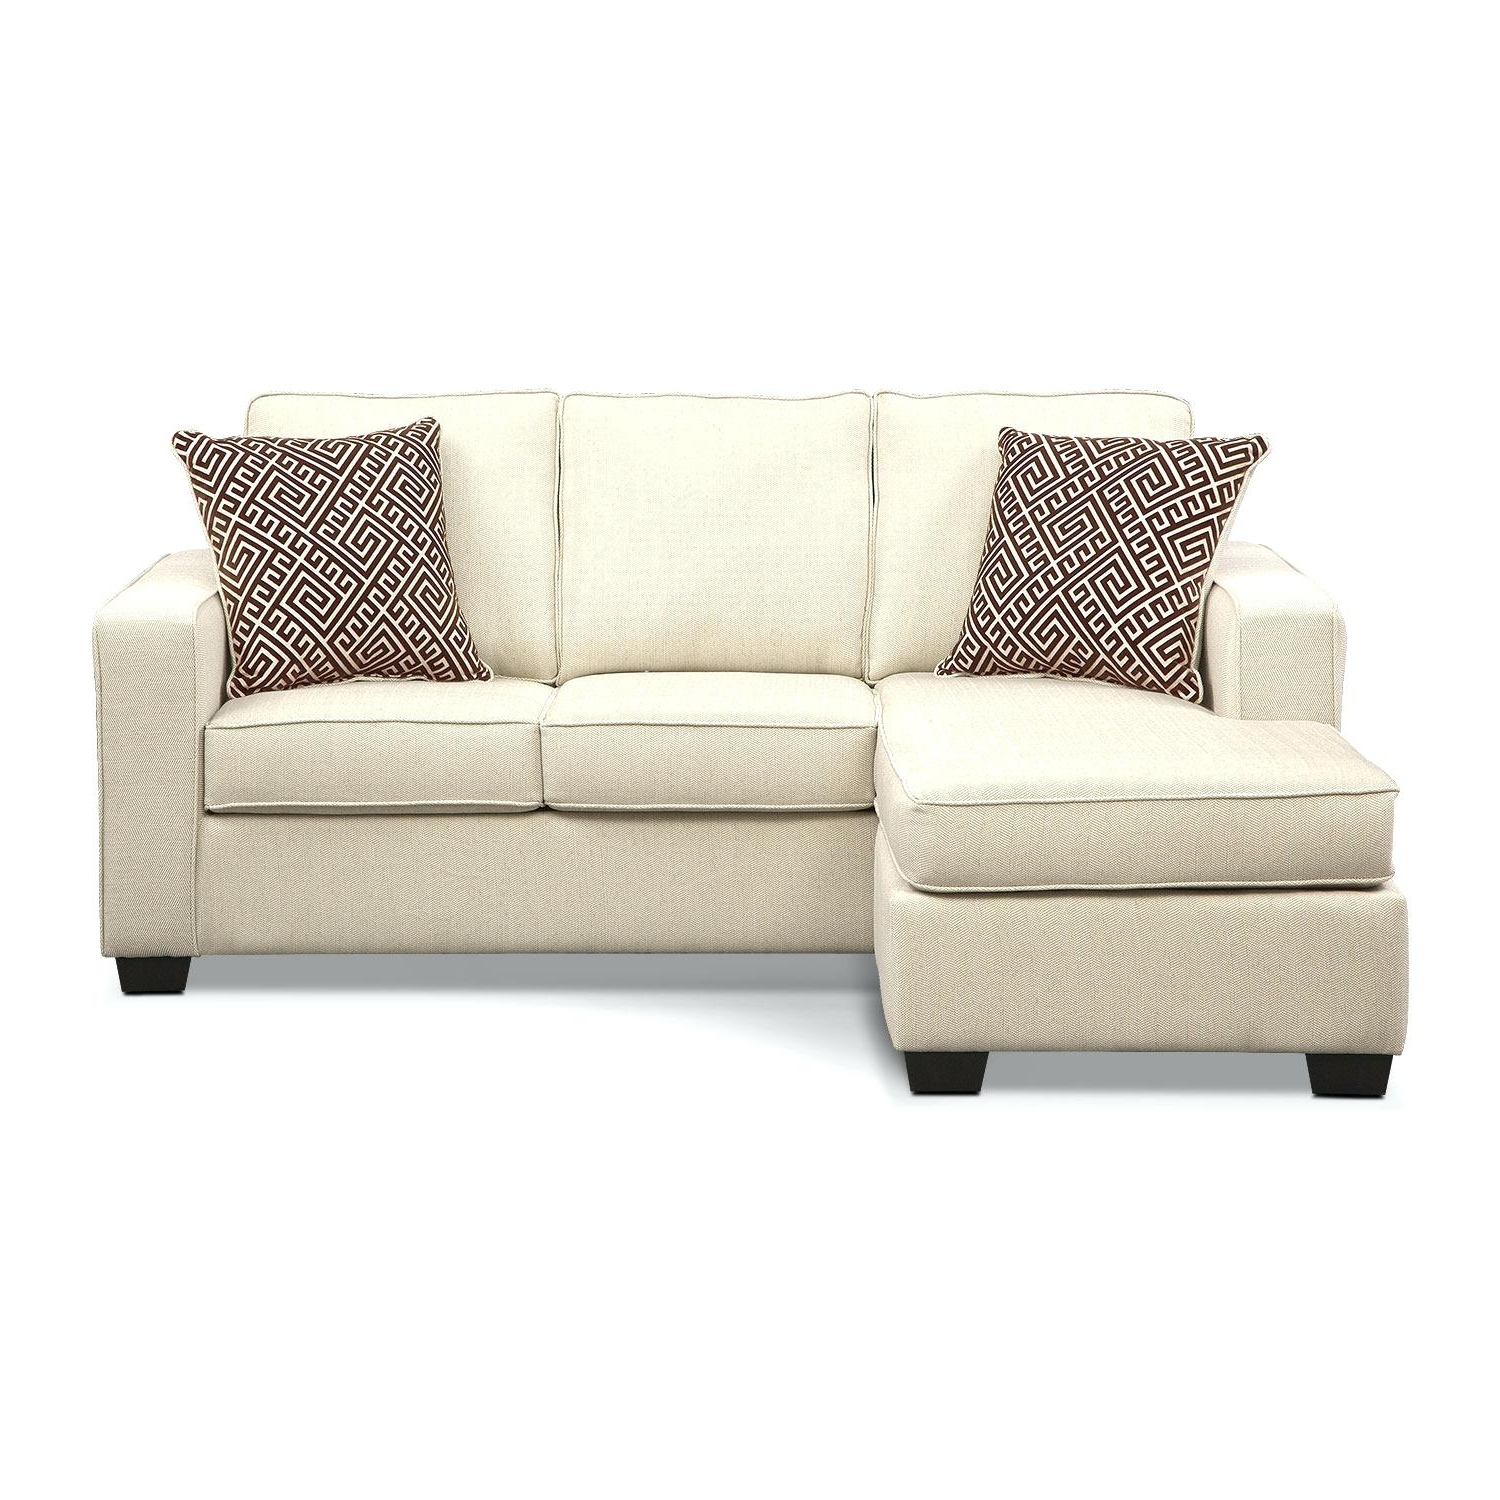 Latest City Furniture Sofa Beds Value Bed With – 4Parkar In City Sofa Beds (View 9 of 15)